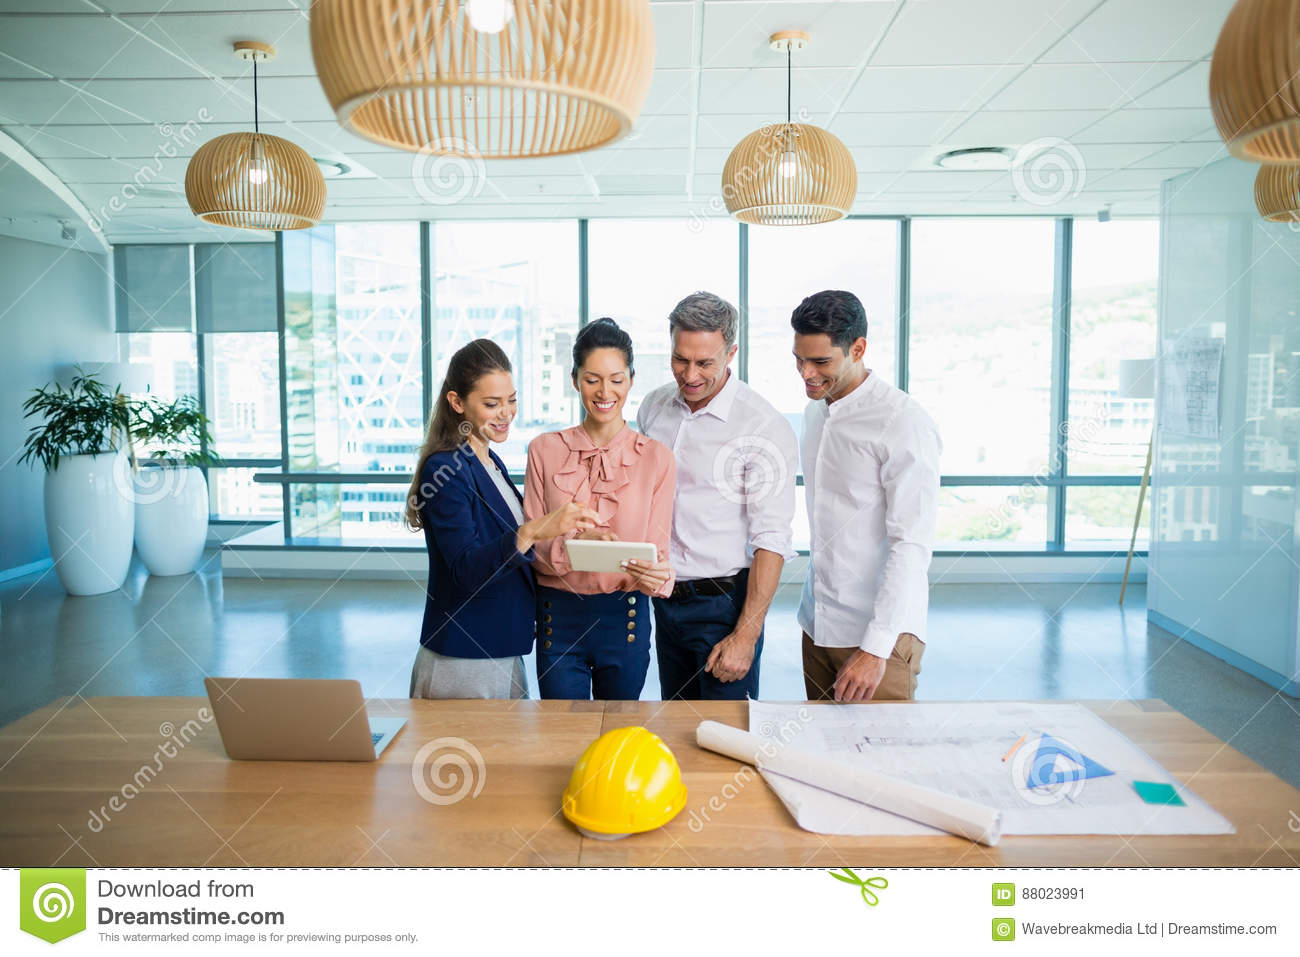 Smiling architects discussing over digital tablet